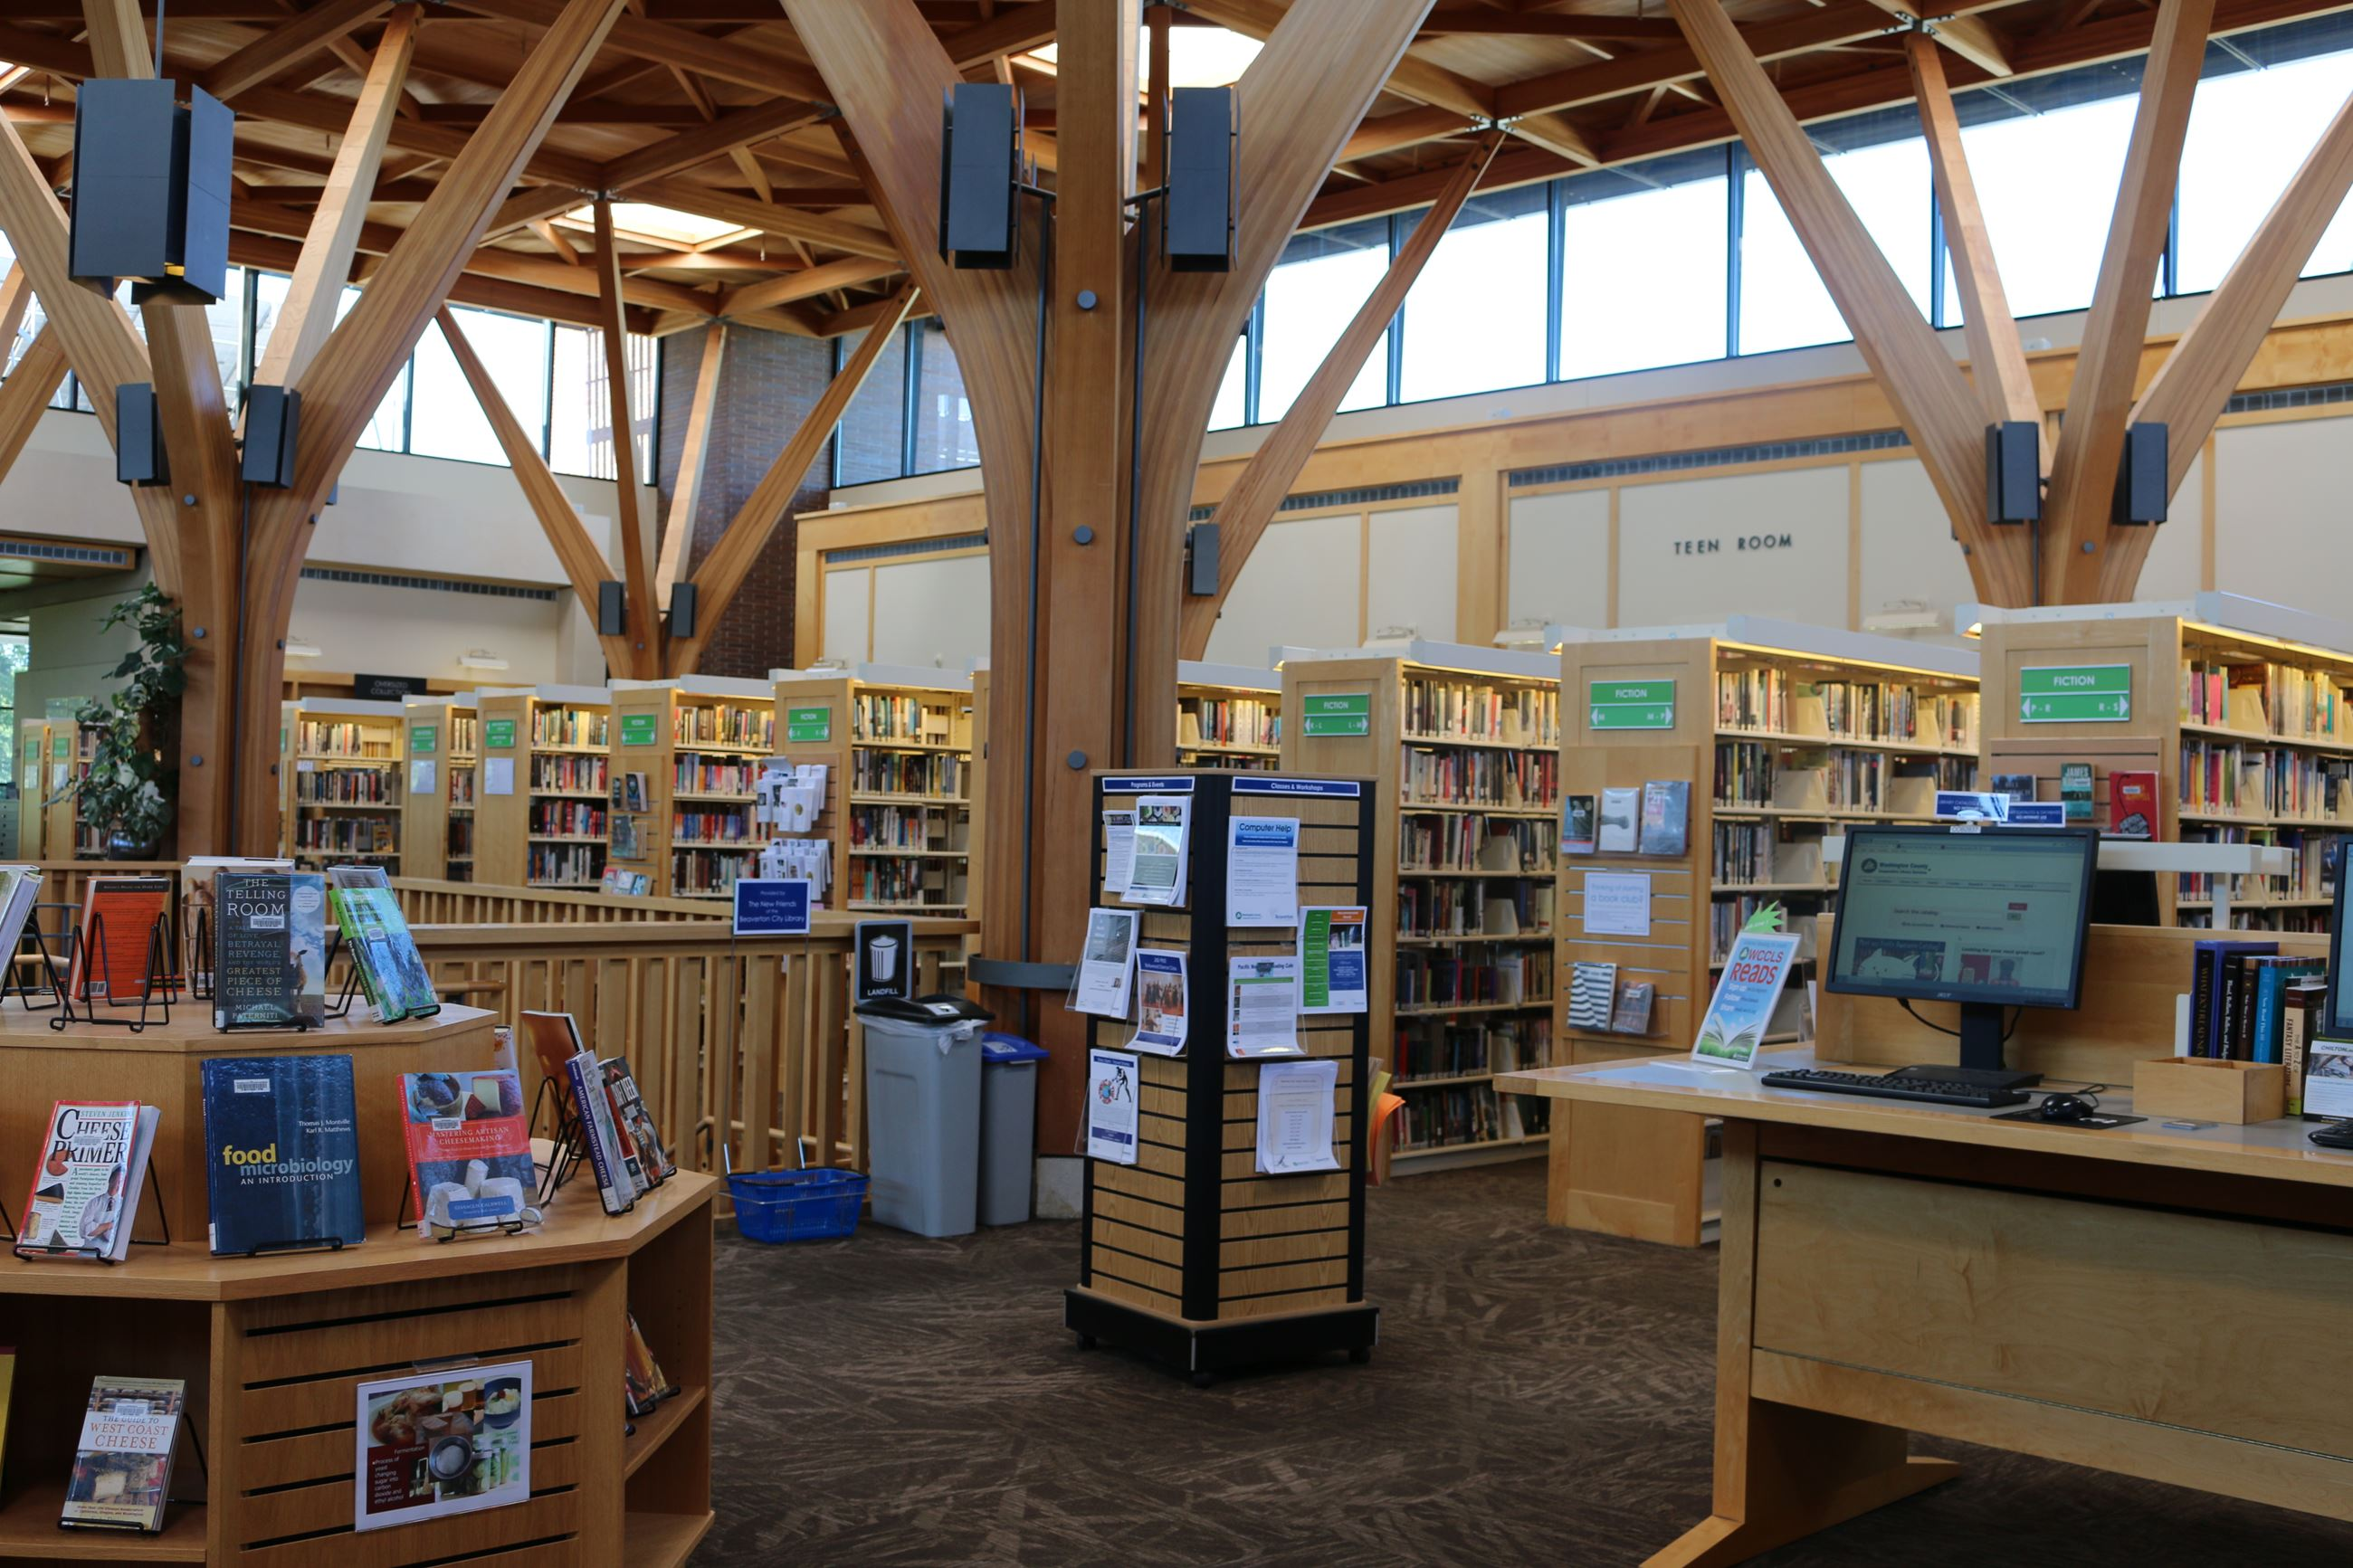 Library displays and shelves on the second floor